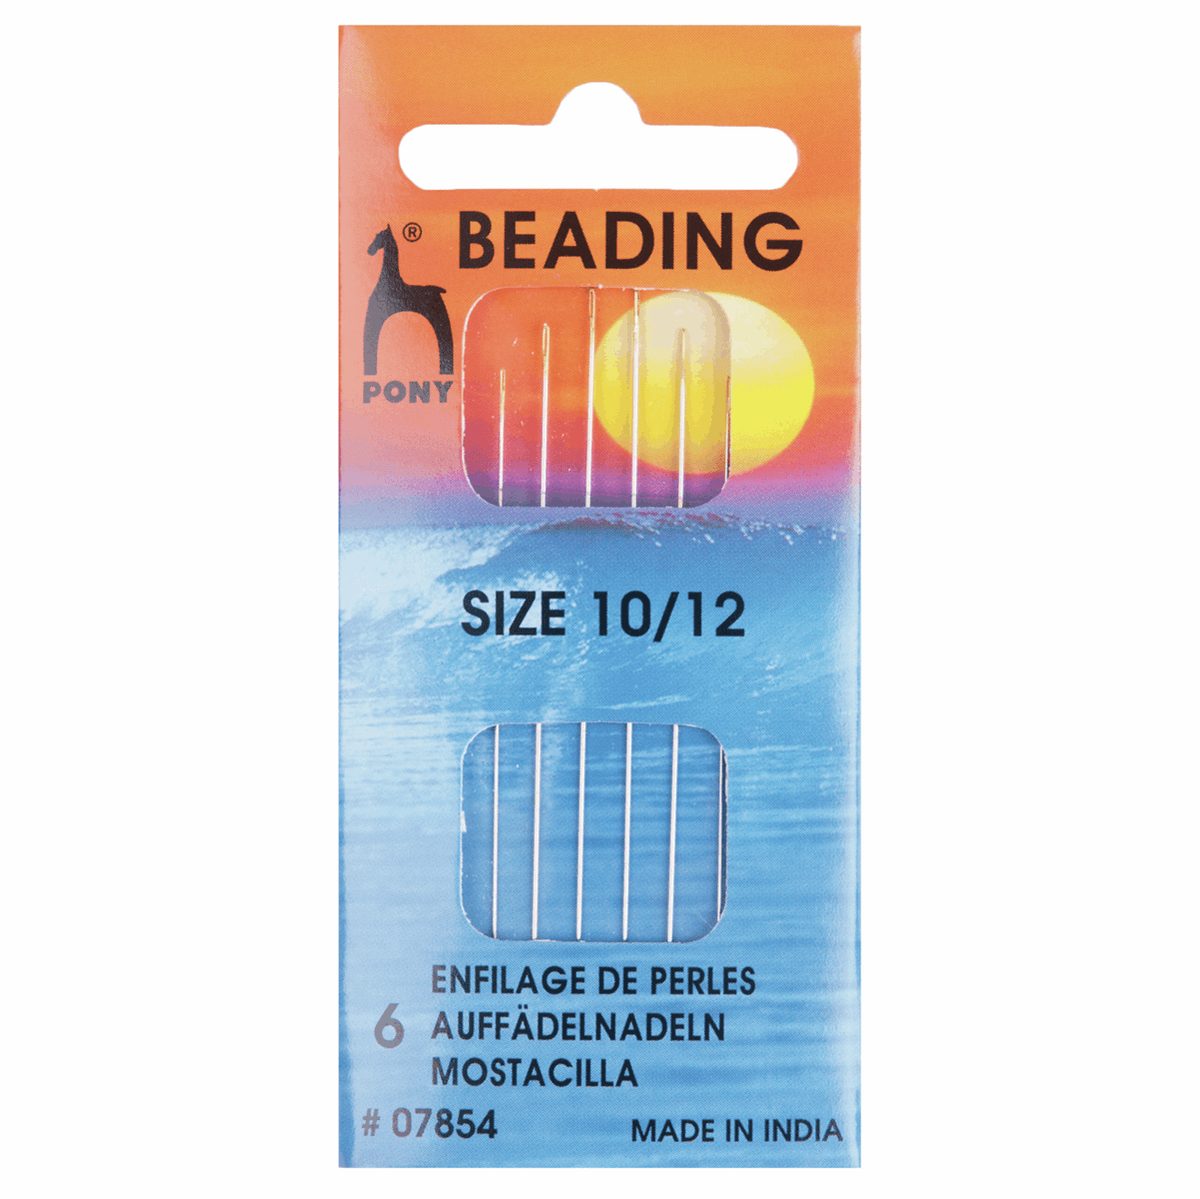 Hand Sewing Needles: Beading - Gold Eye: Size 10/12